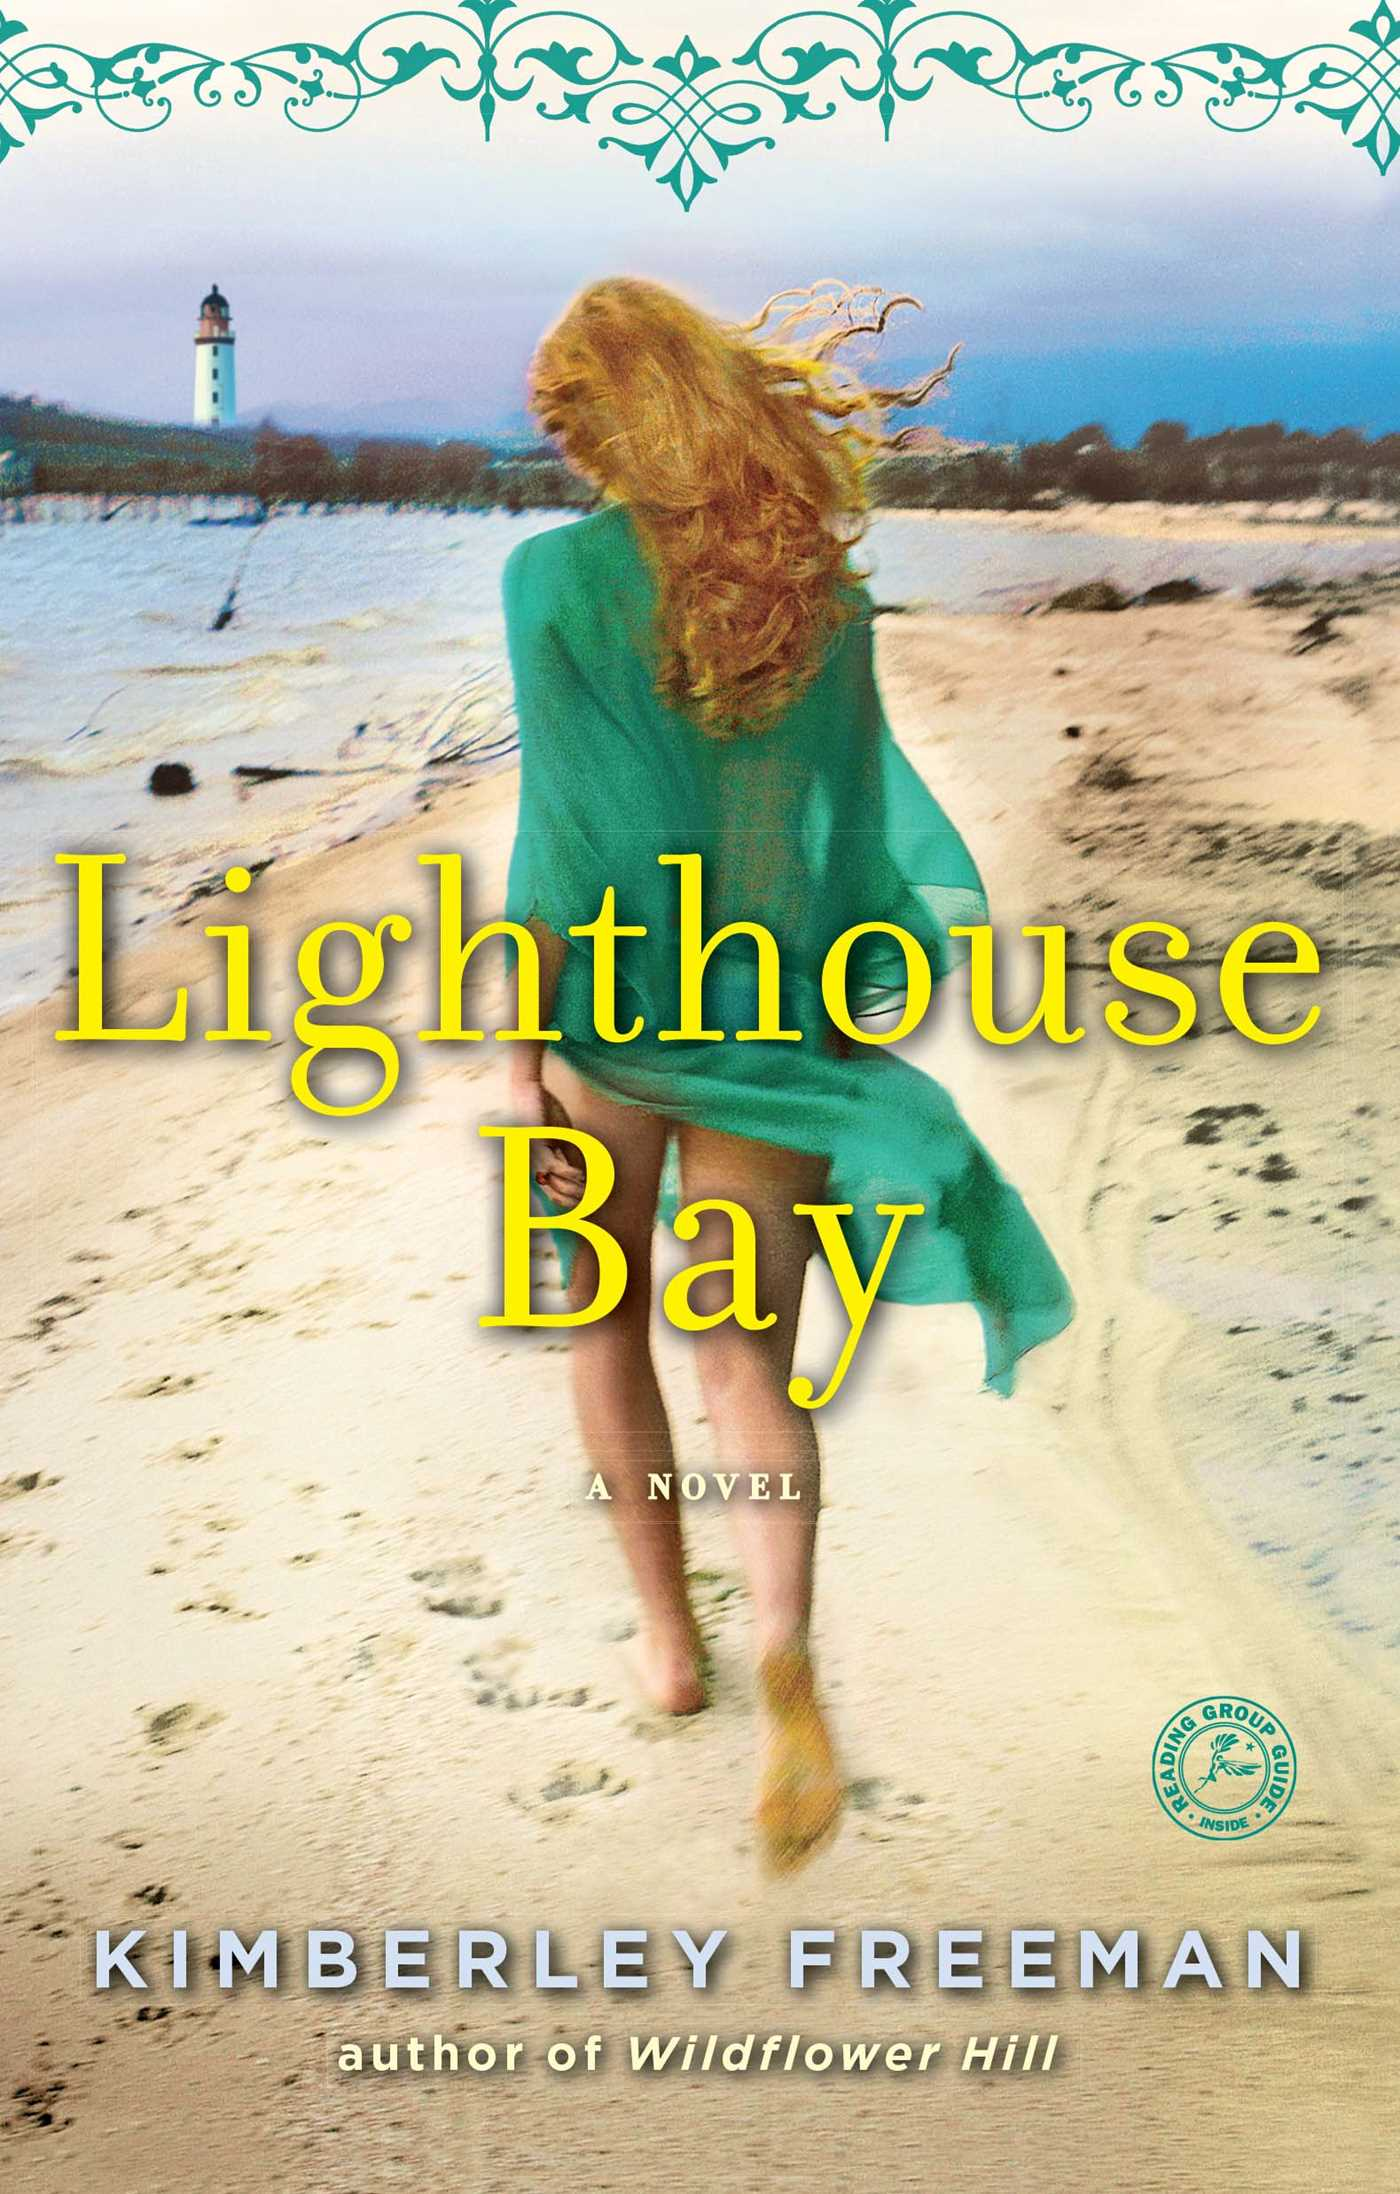 Lighthouse-bay-9781451672794_hr